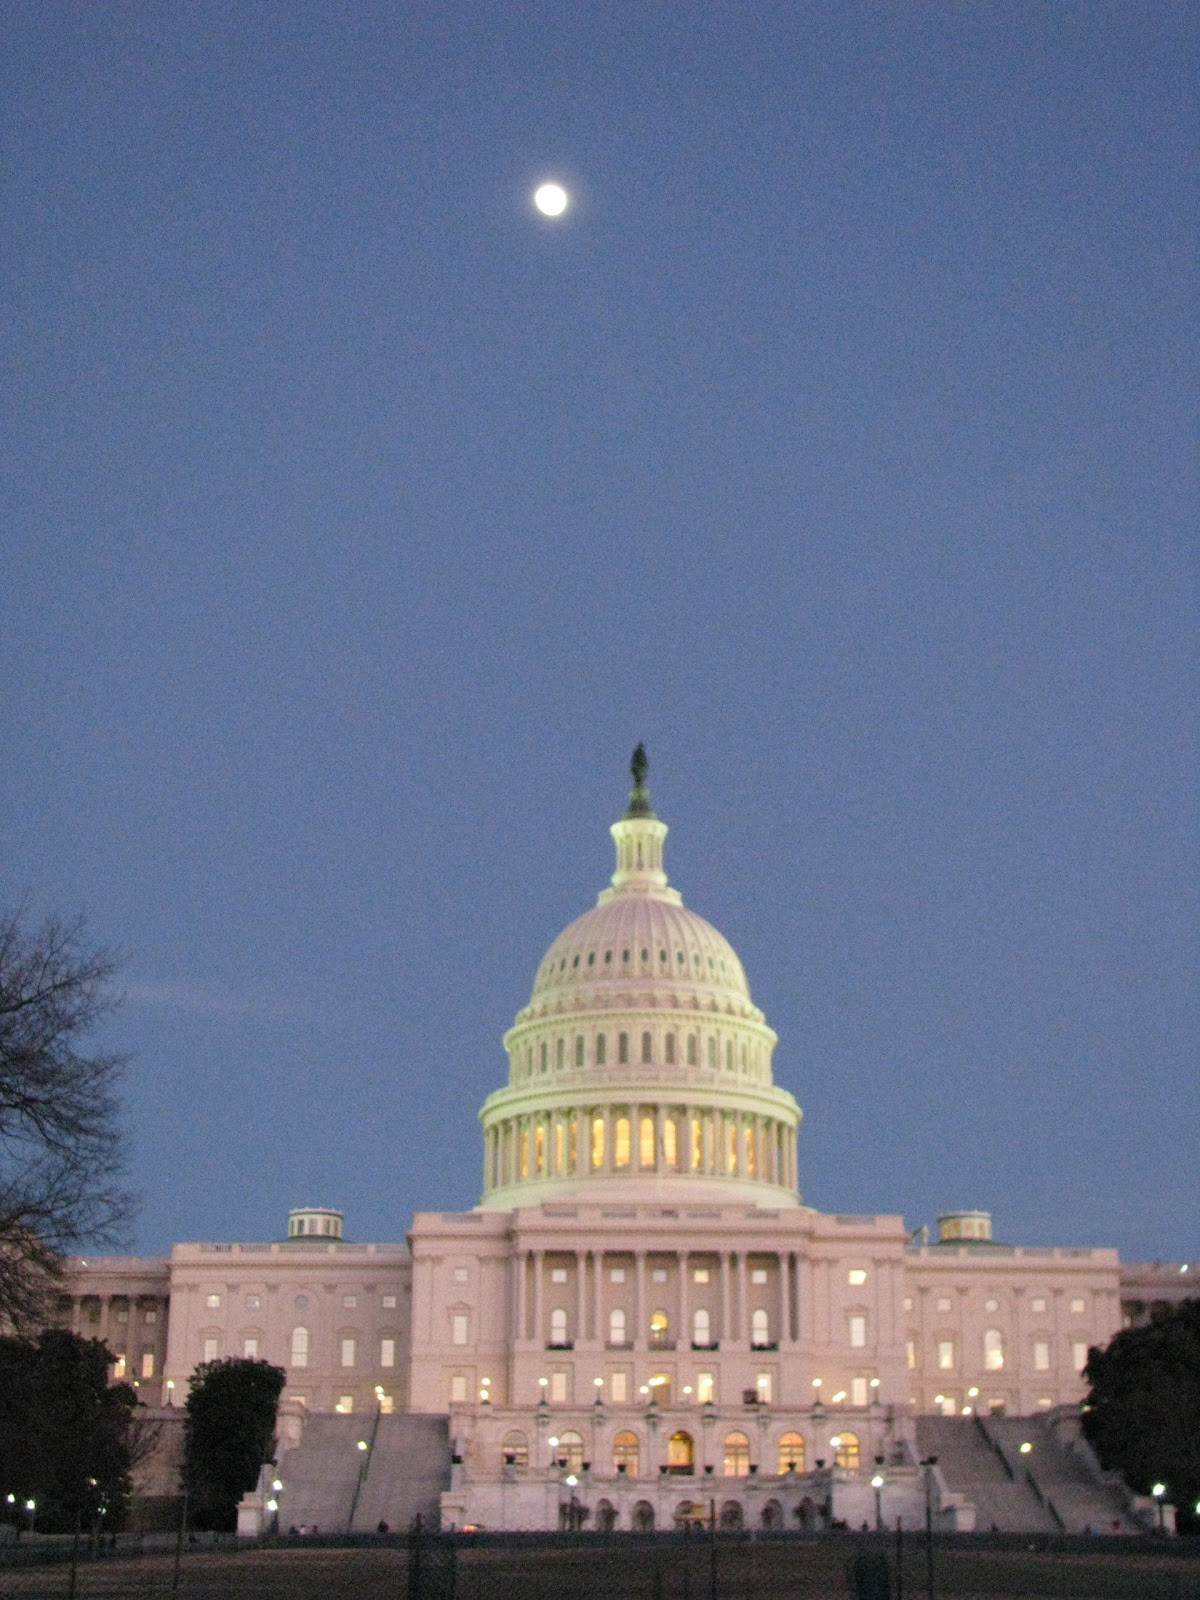 Photo of the U.S. Capital with full moon overhead.